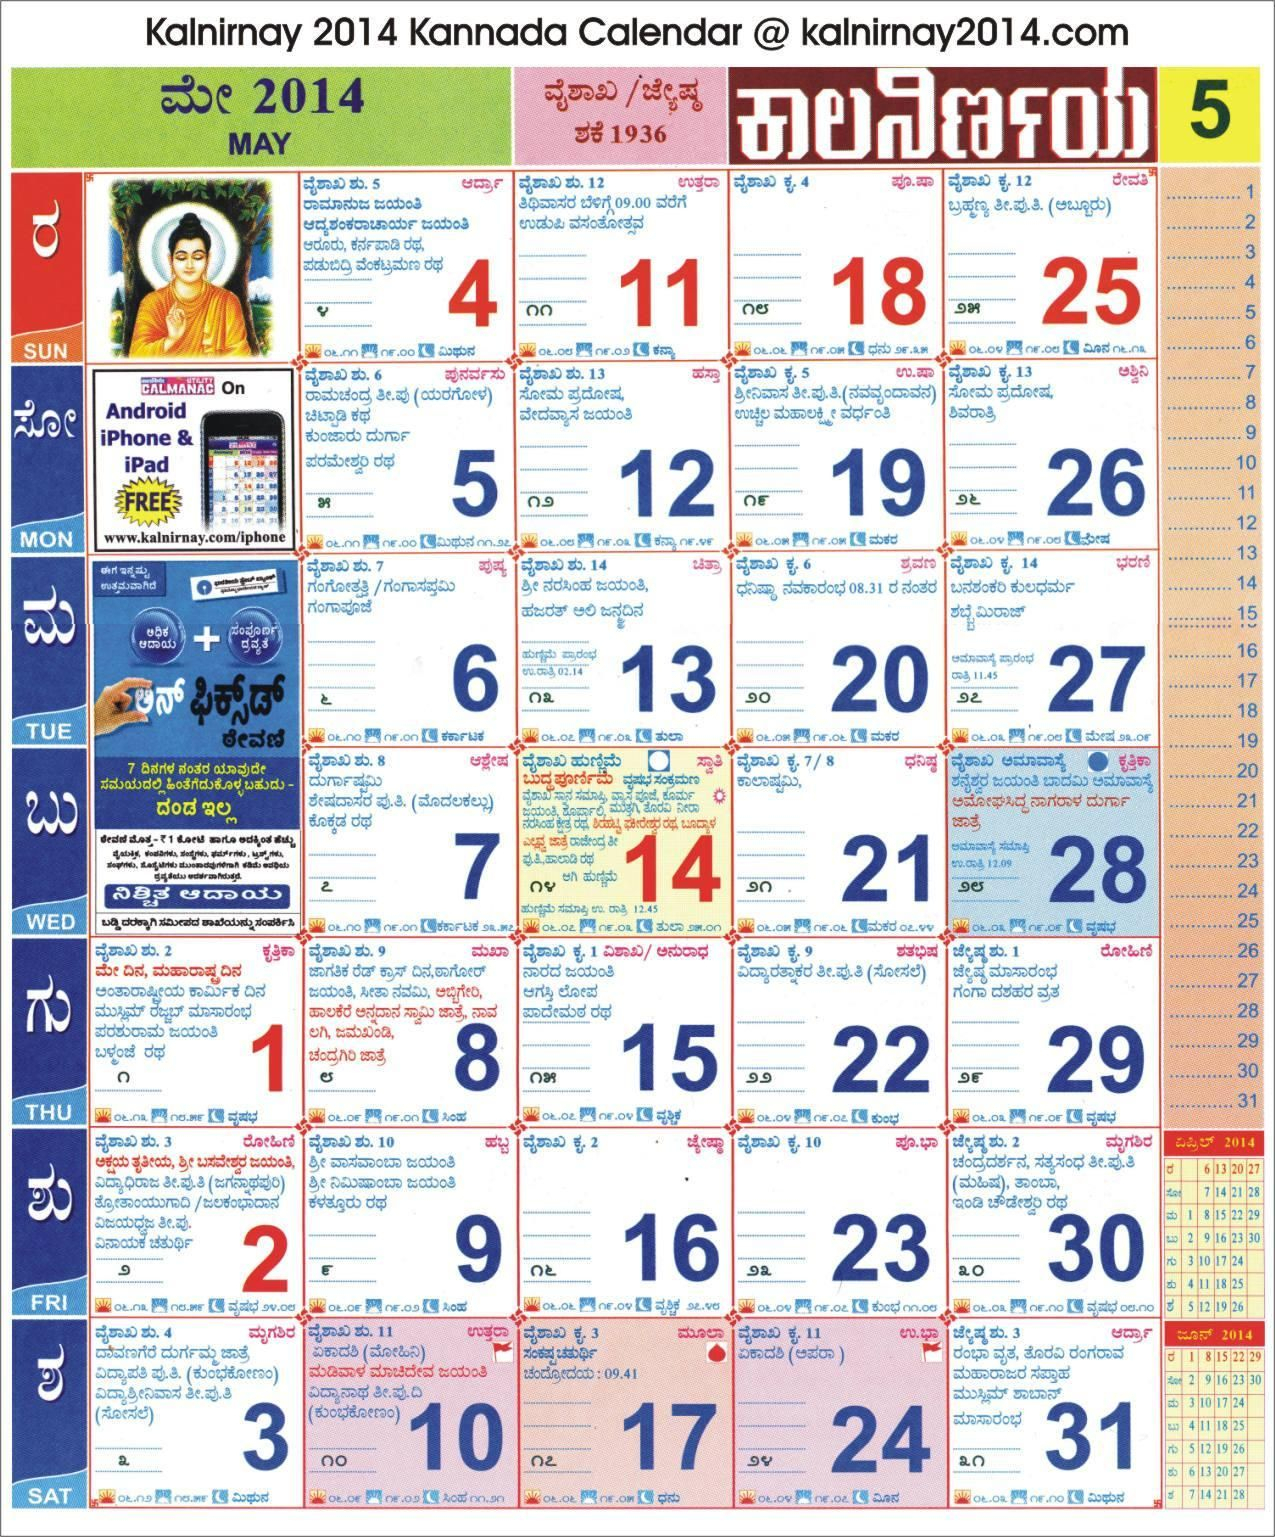 May 2014 Kannada Kalnirnay Calendar | Calendar, October 2014